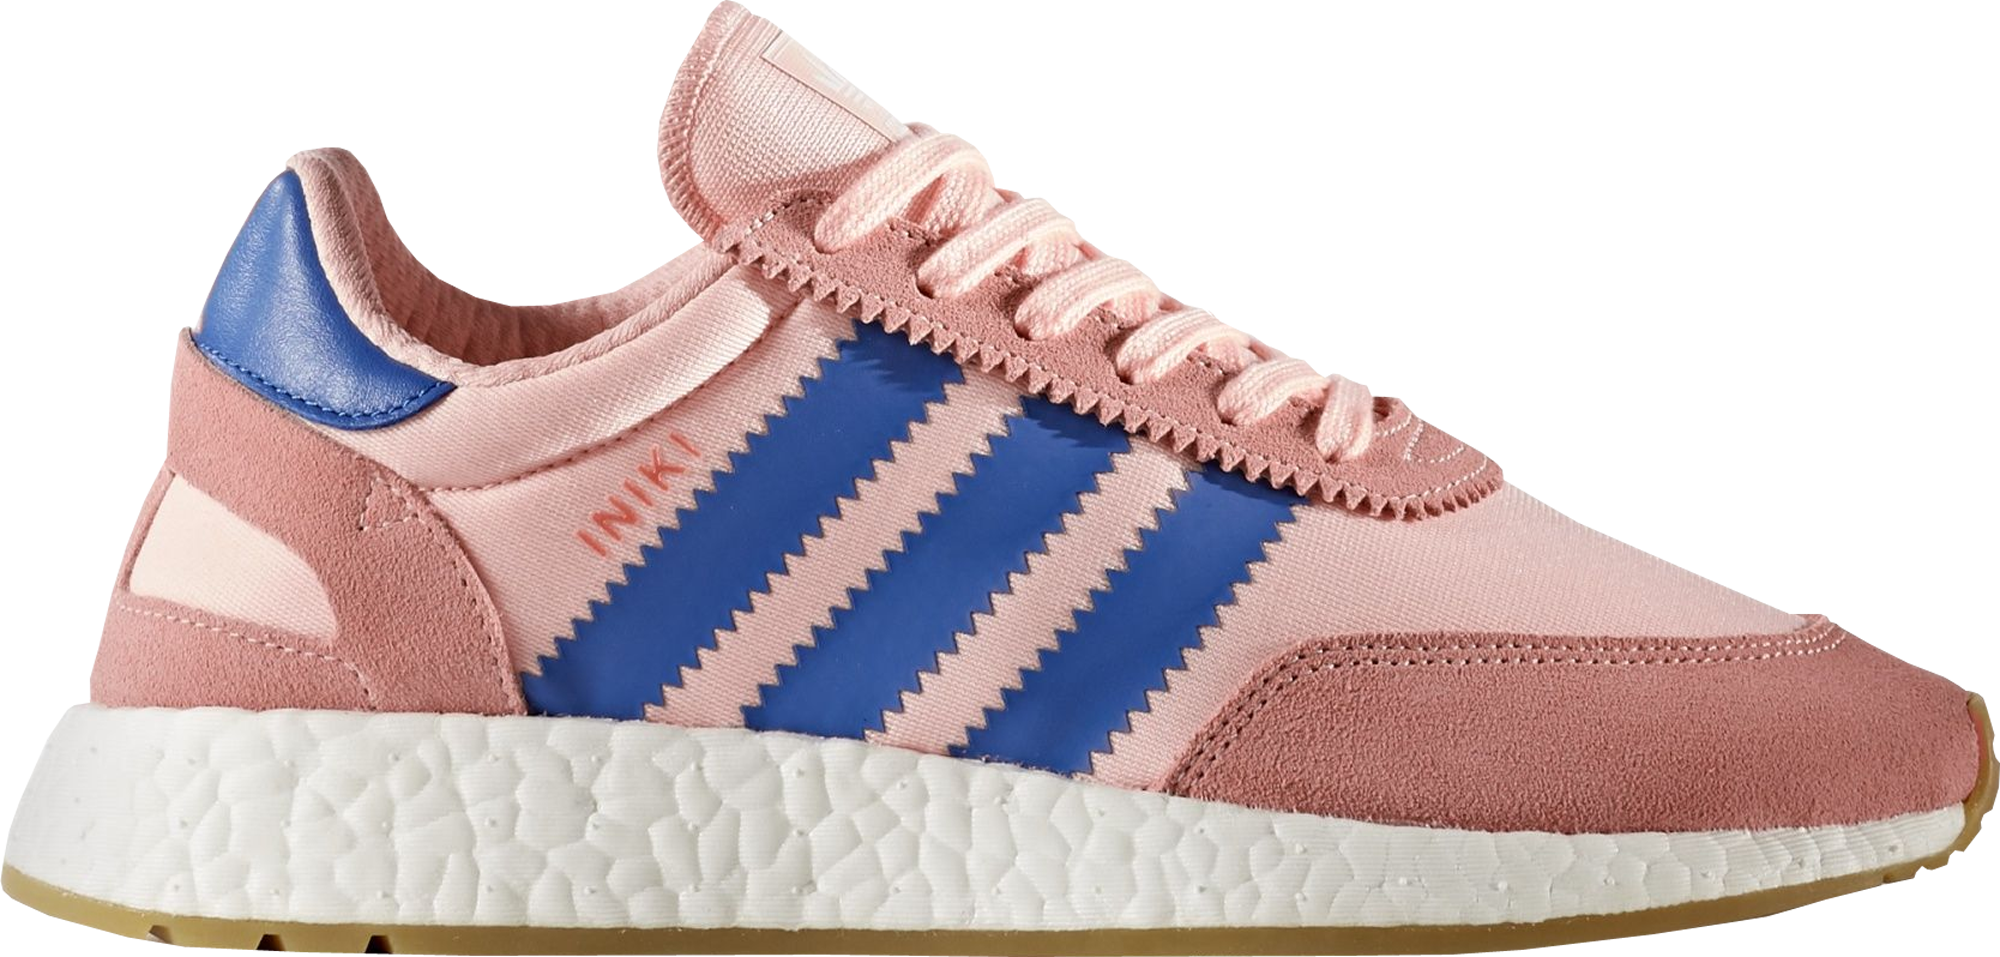 6abc242da8f171 adidas Iniki Runner Haze Coral Blue (W) - StockX News